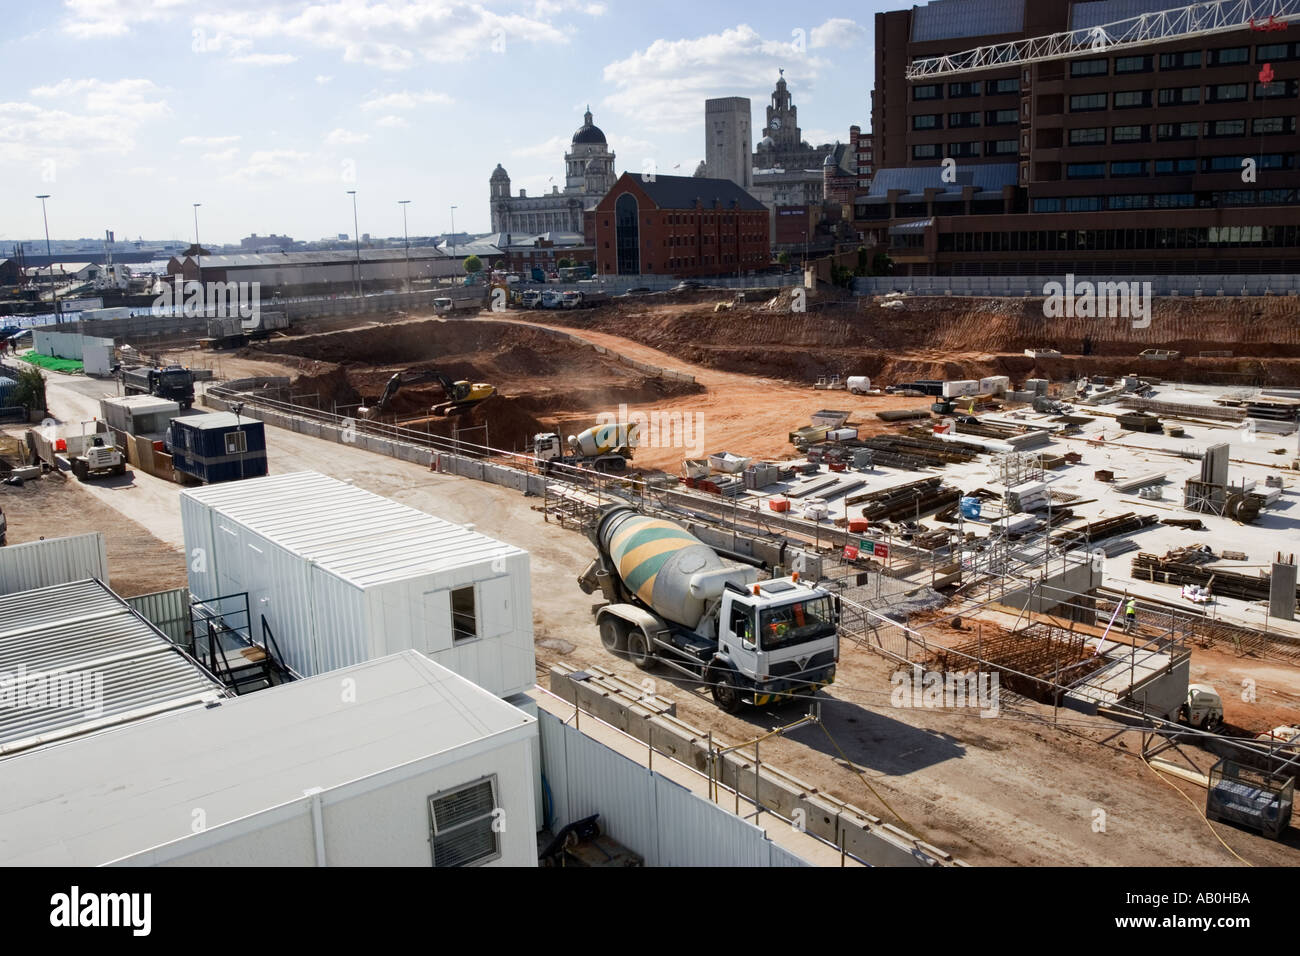 Urban building site - a city centre regeneration project, UK - Stock Image